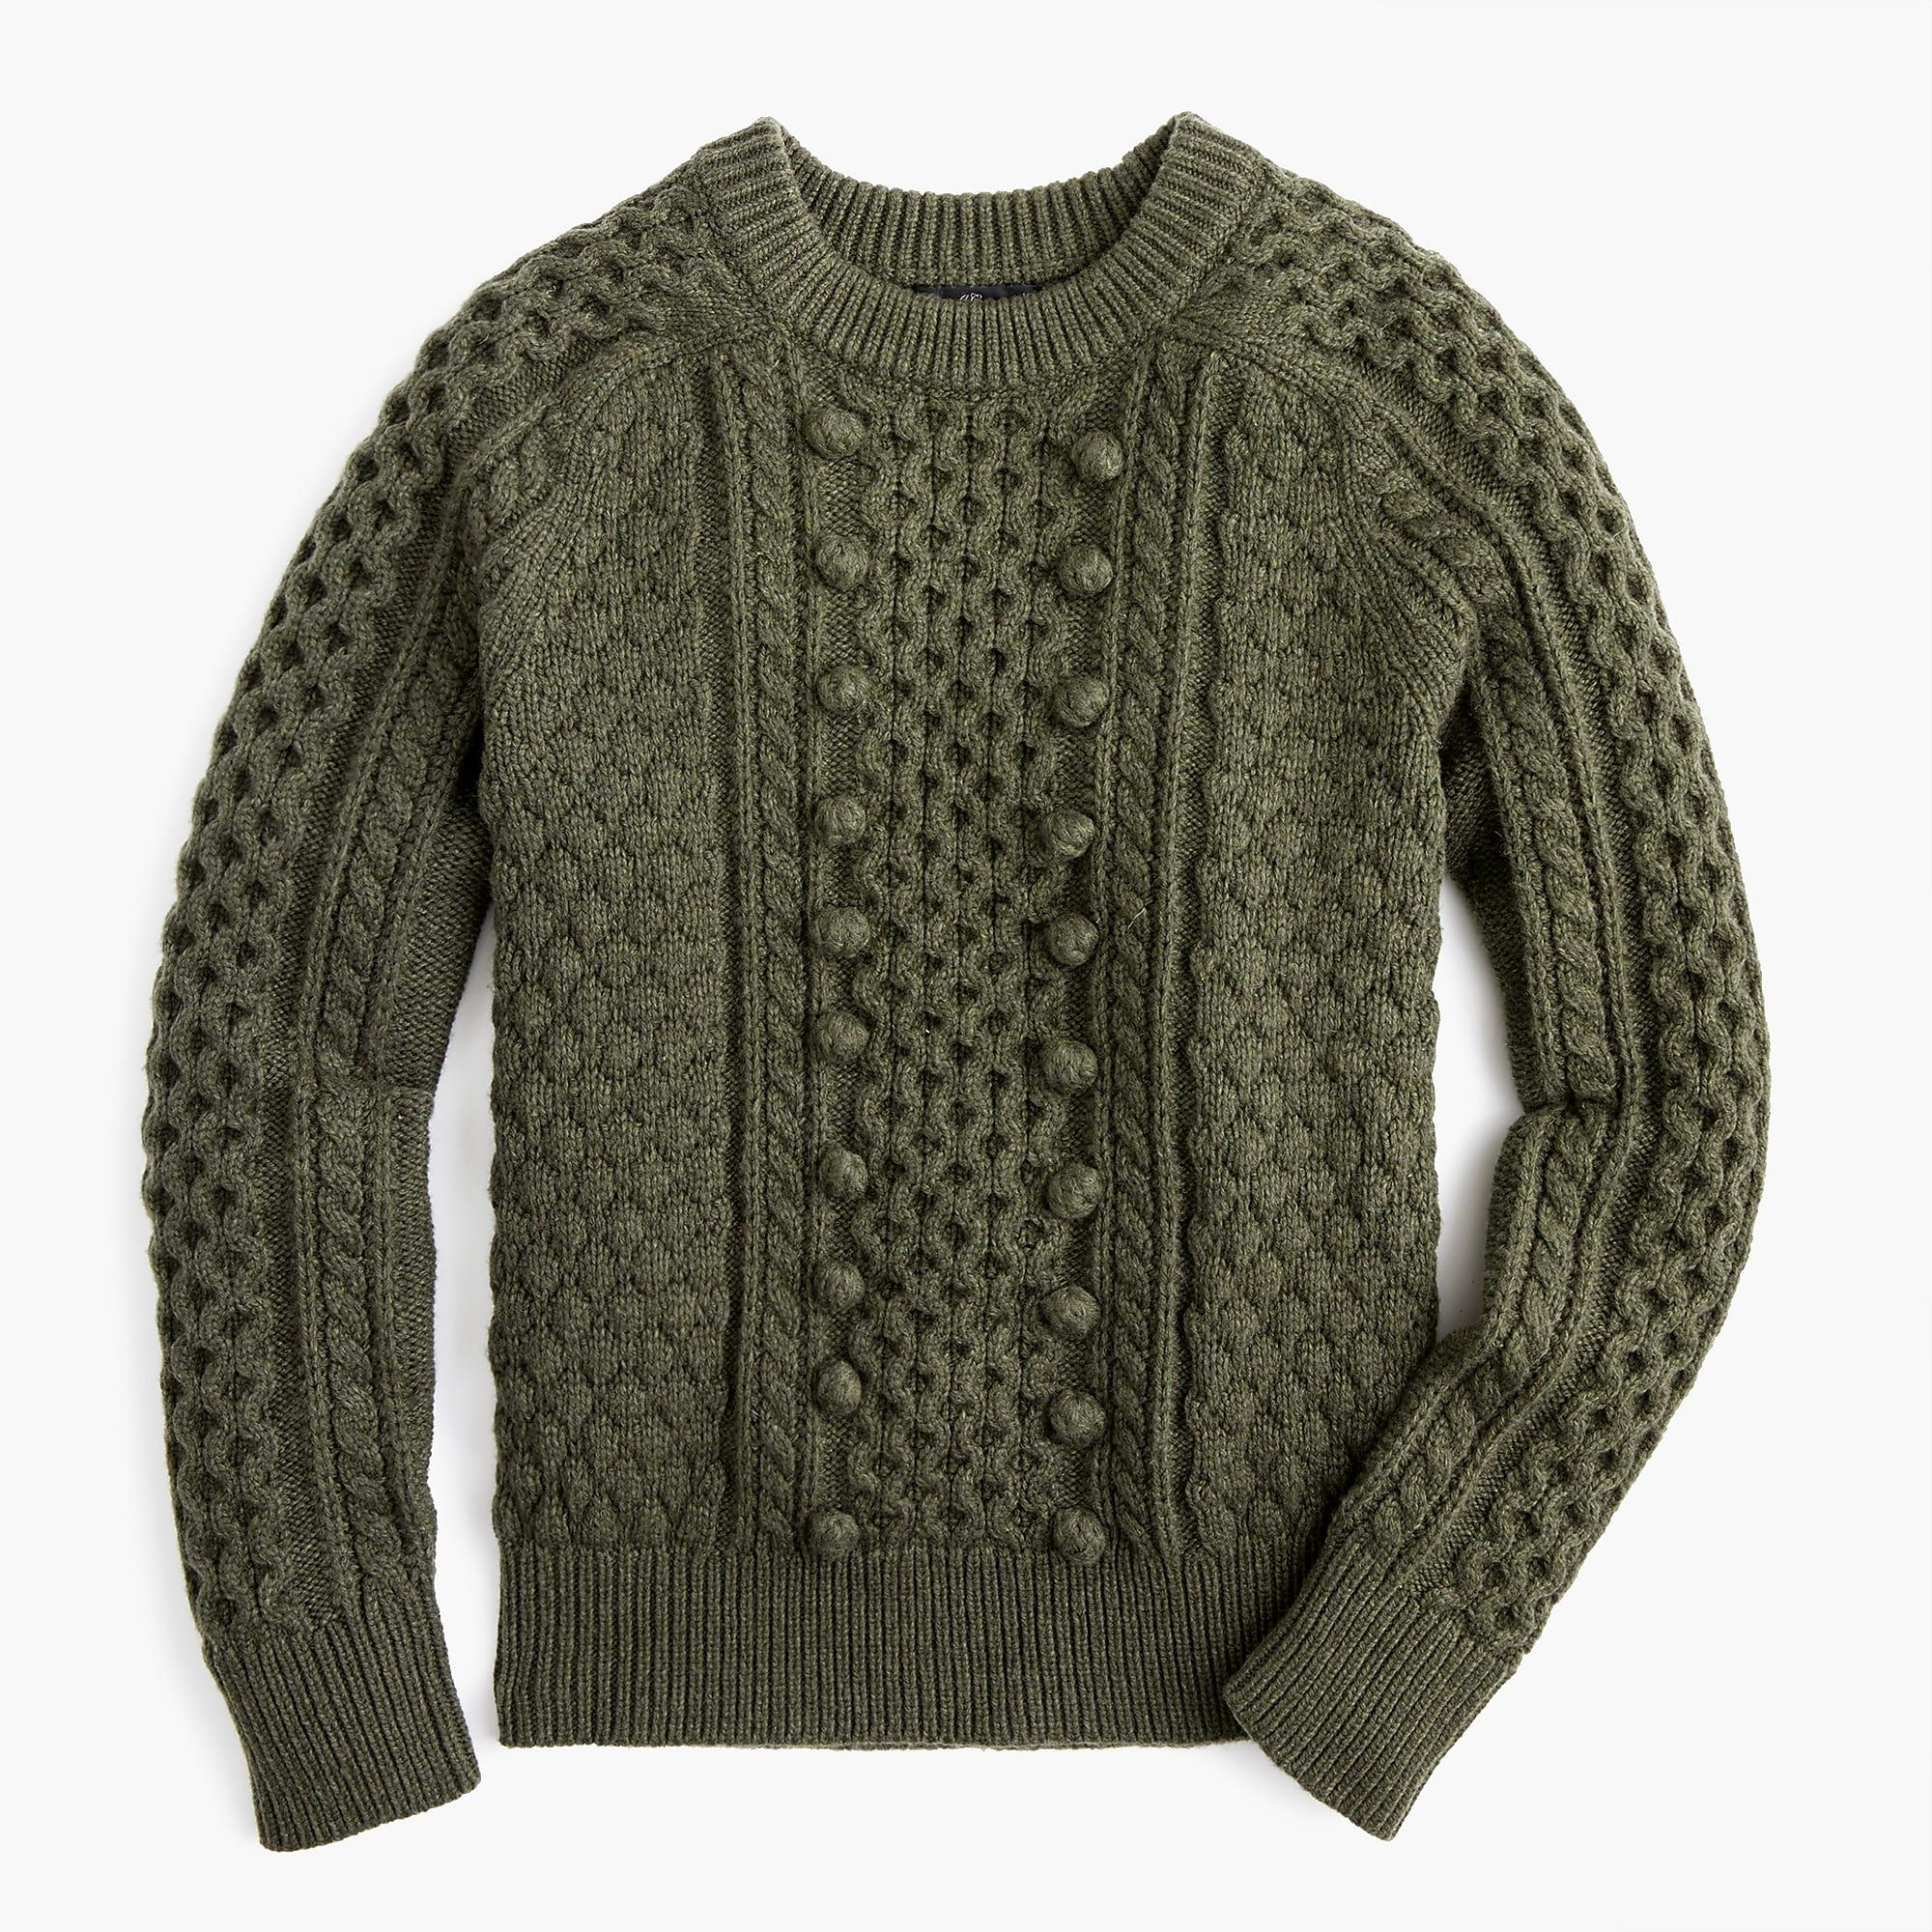 346c3e716a14 50% off code TGIF Large Heather Olive J.Crew - Popcorn cable-knit sweater